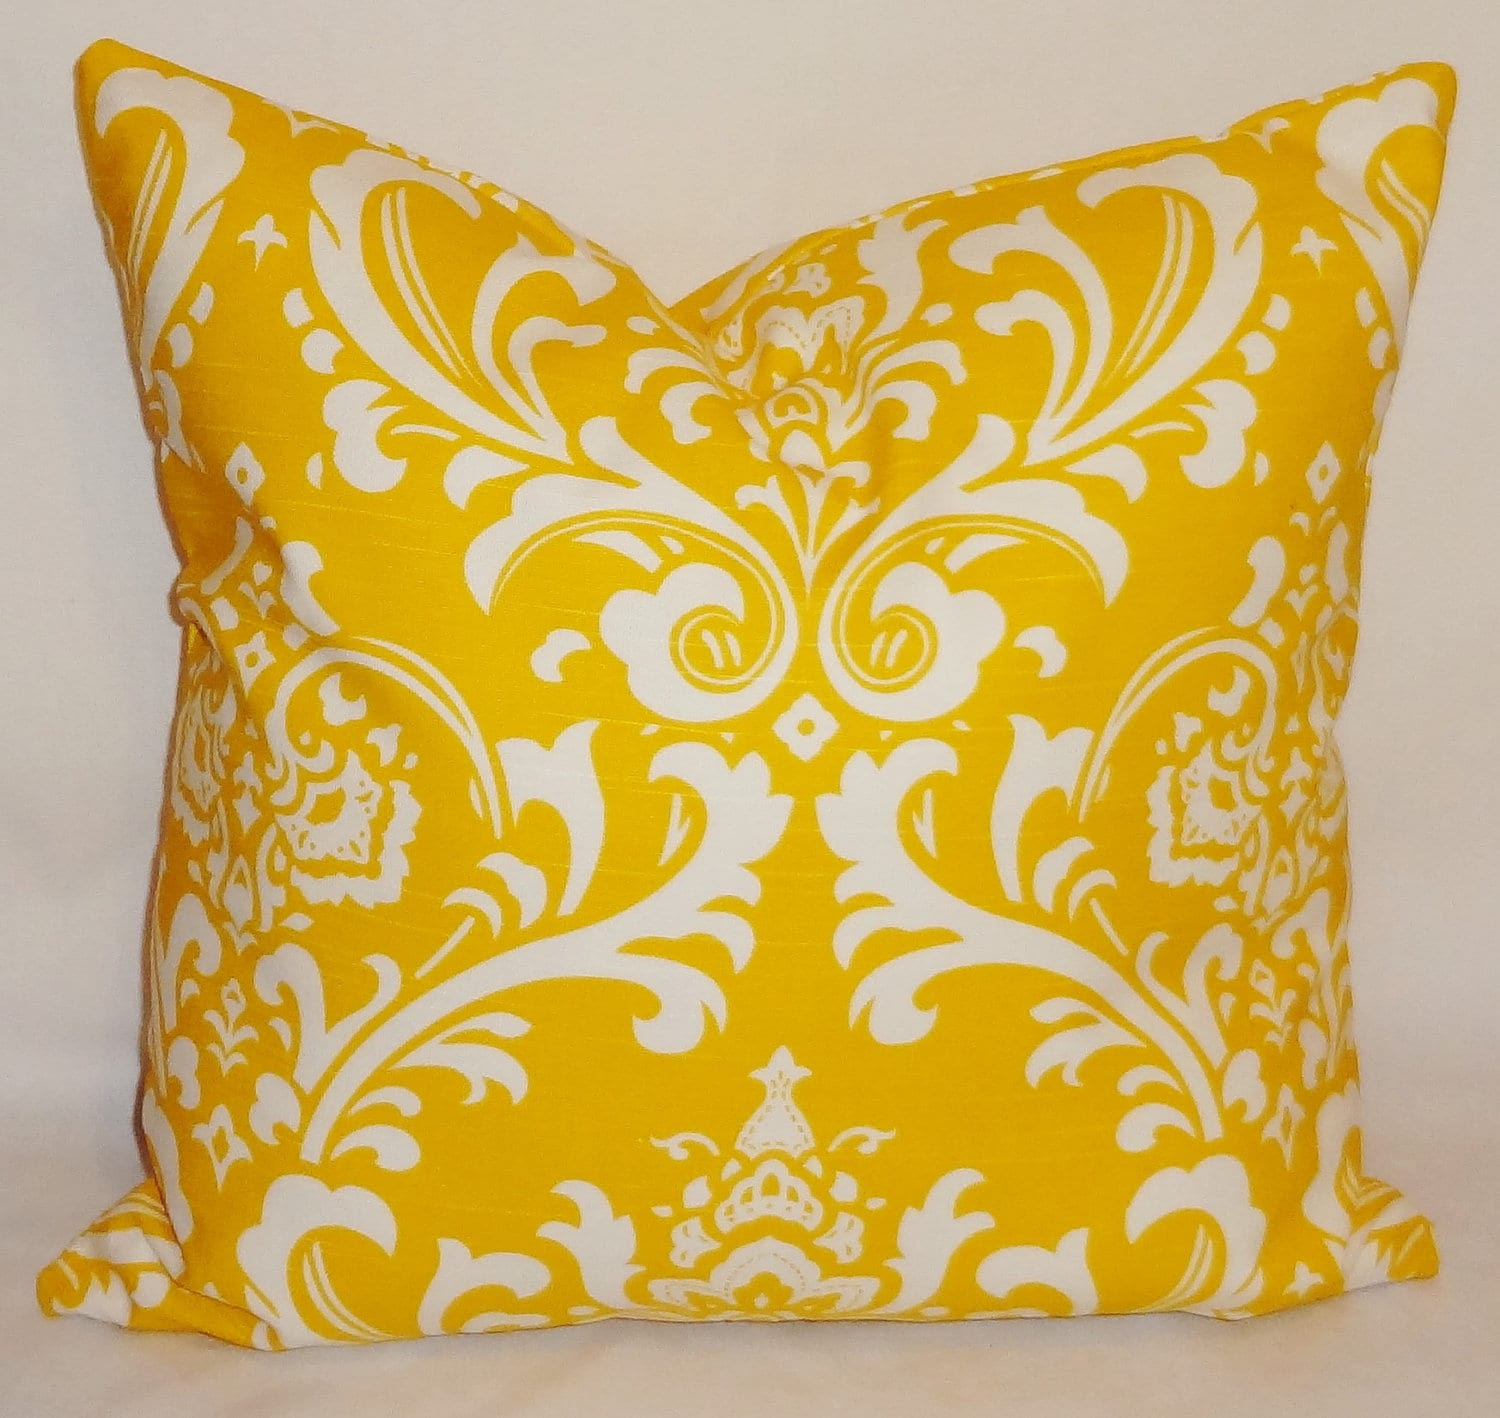 Yellow Decorative Pillows From Bed Bath Beyond